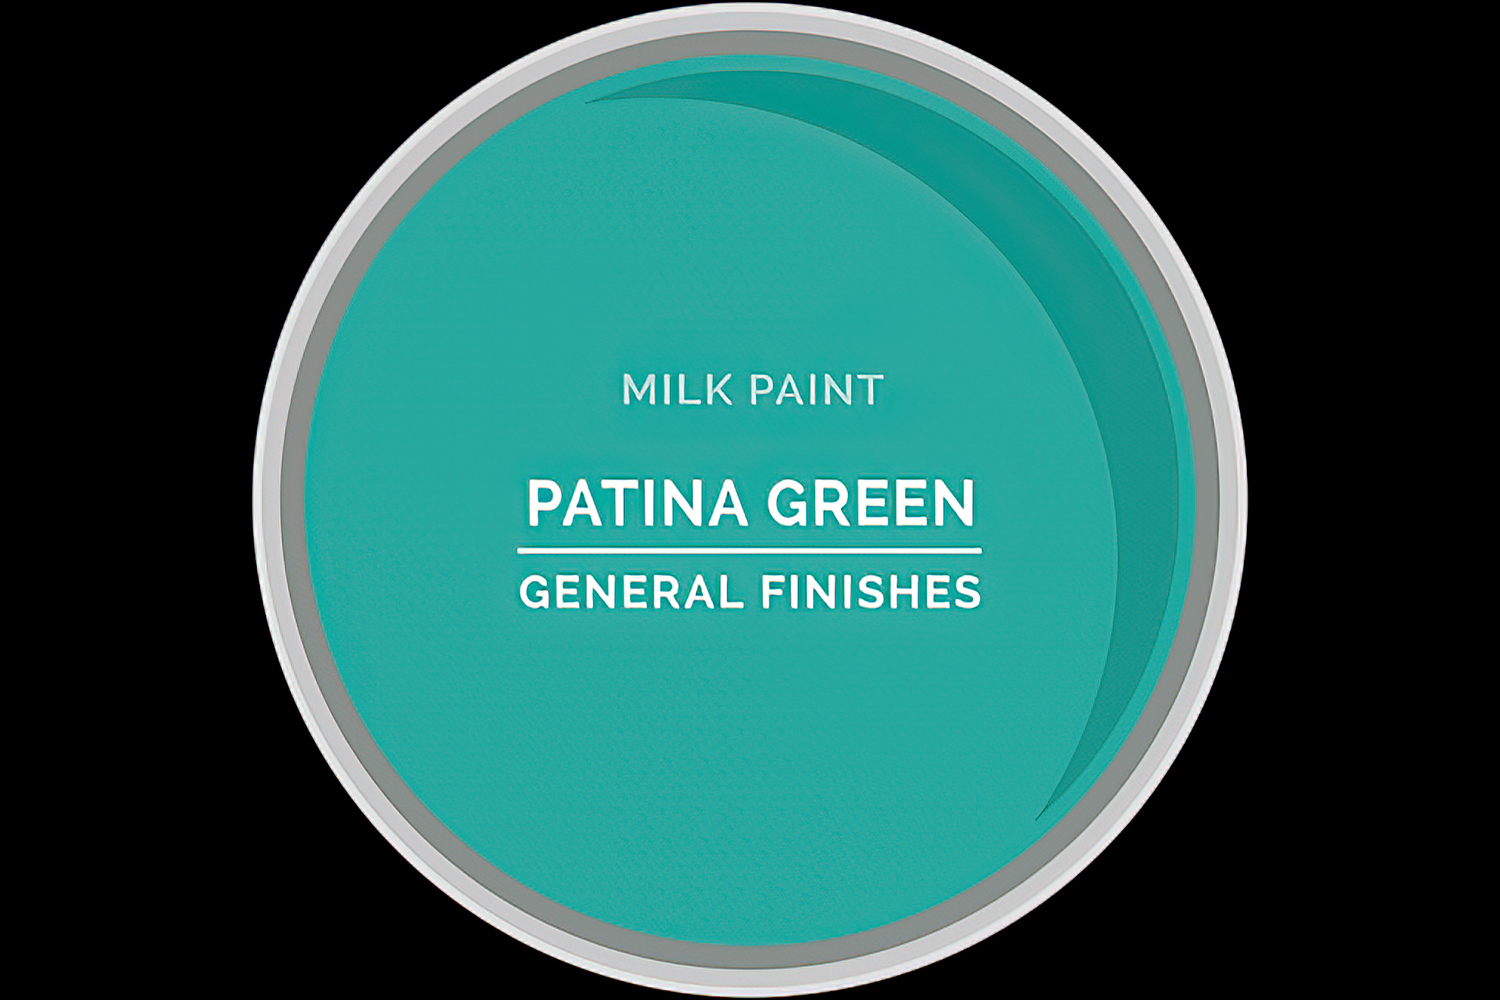 Color Chip Milk Paint PATINA GREEN General Finishes Copy